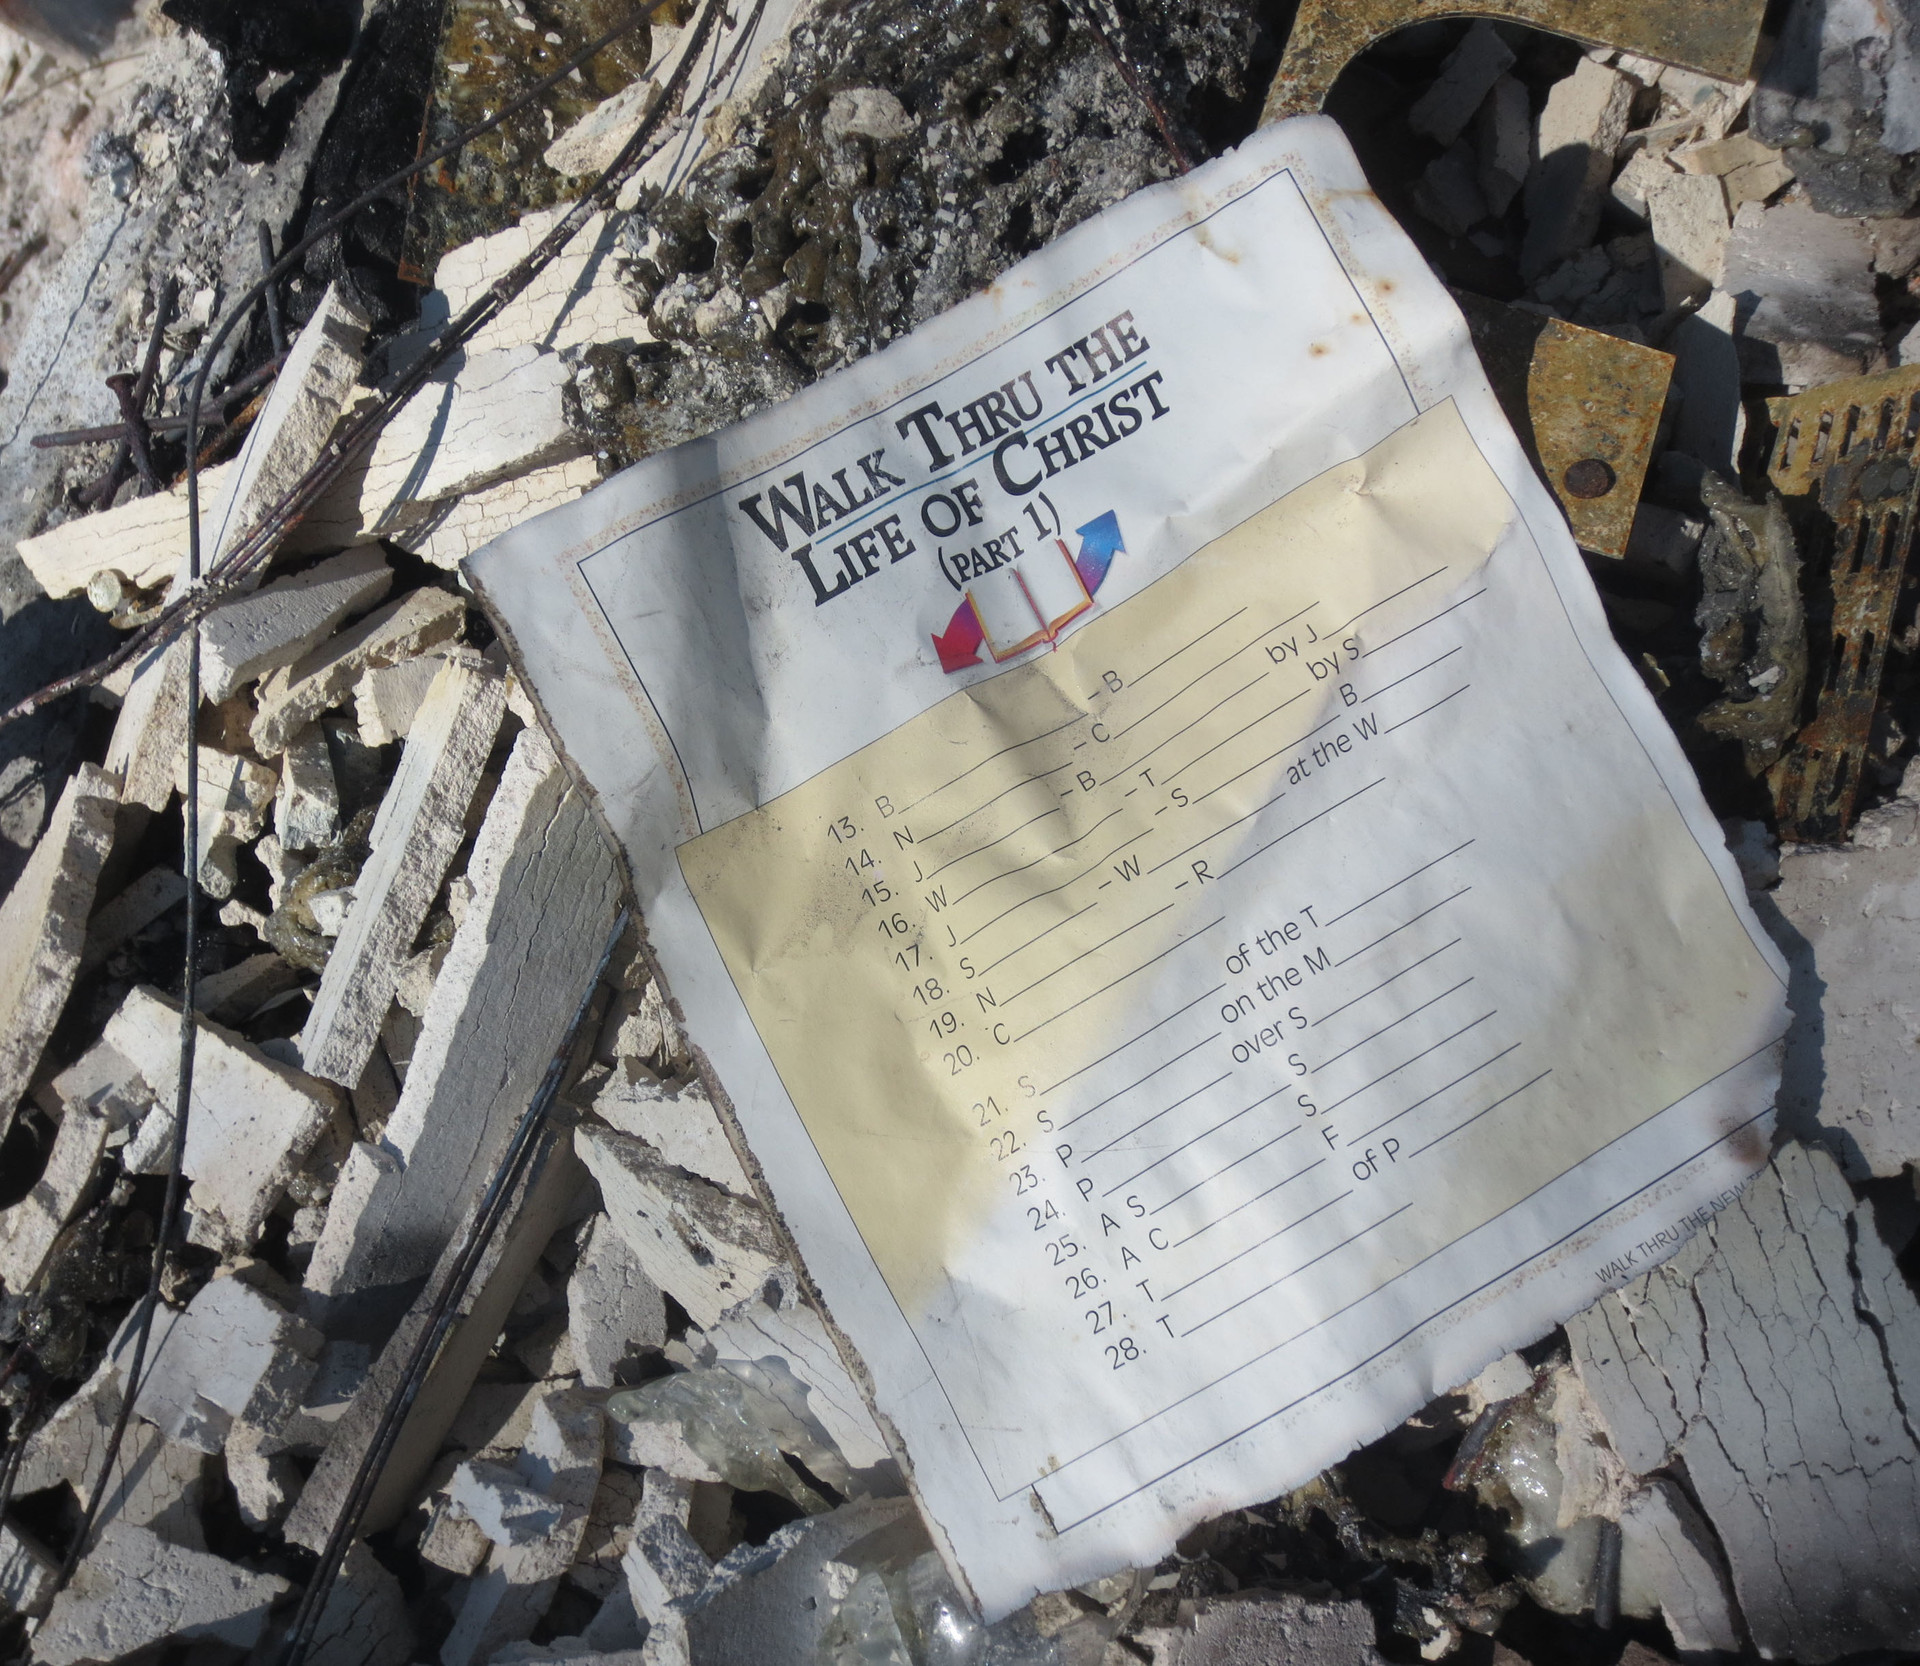 The first item we found, and the only book that survived: The Walk Thru the Bible notebook.